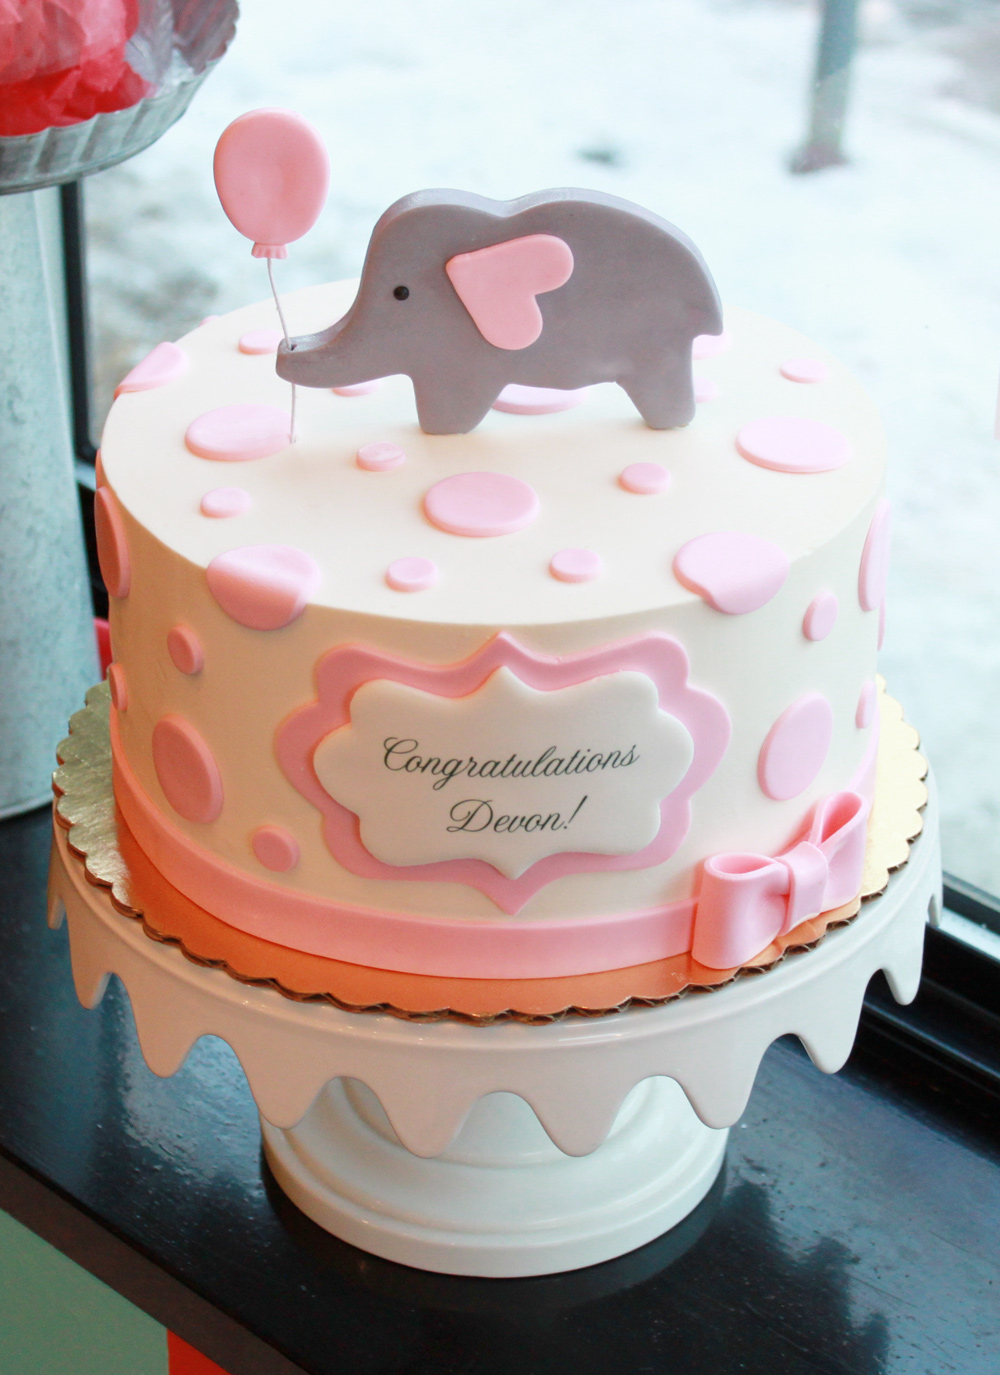 Lovely Baby Shower Cake Ideas - Baby Shower Cakes With Delicious Recipe inside Baby Shower Cake Recipes